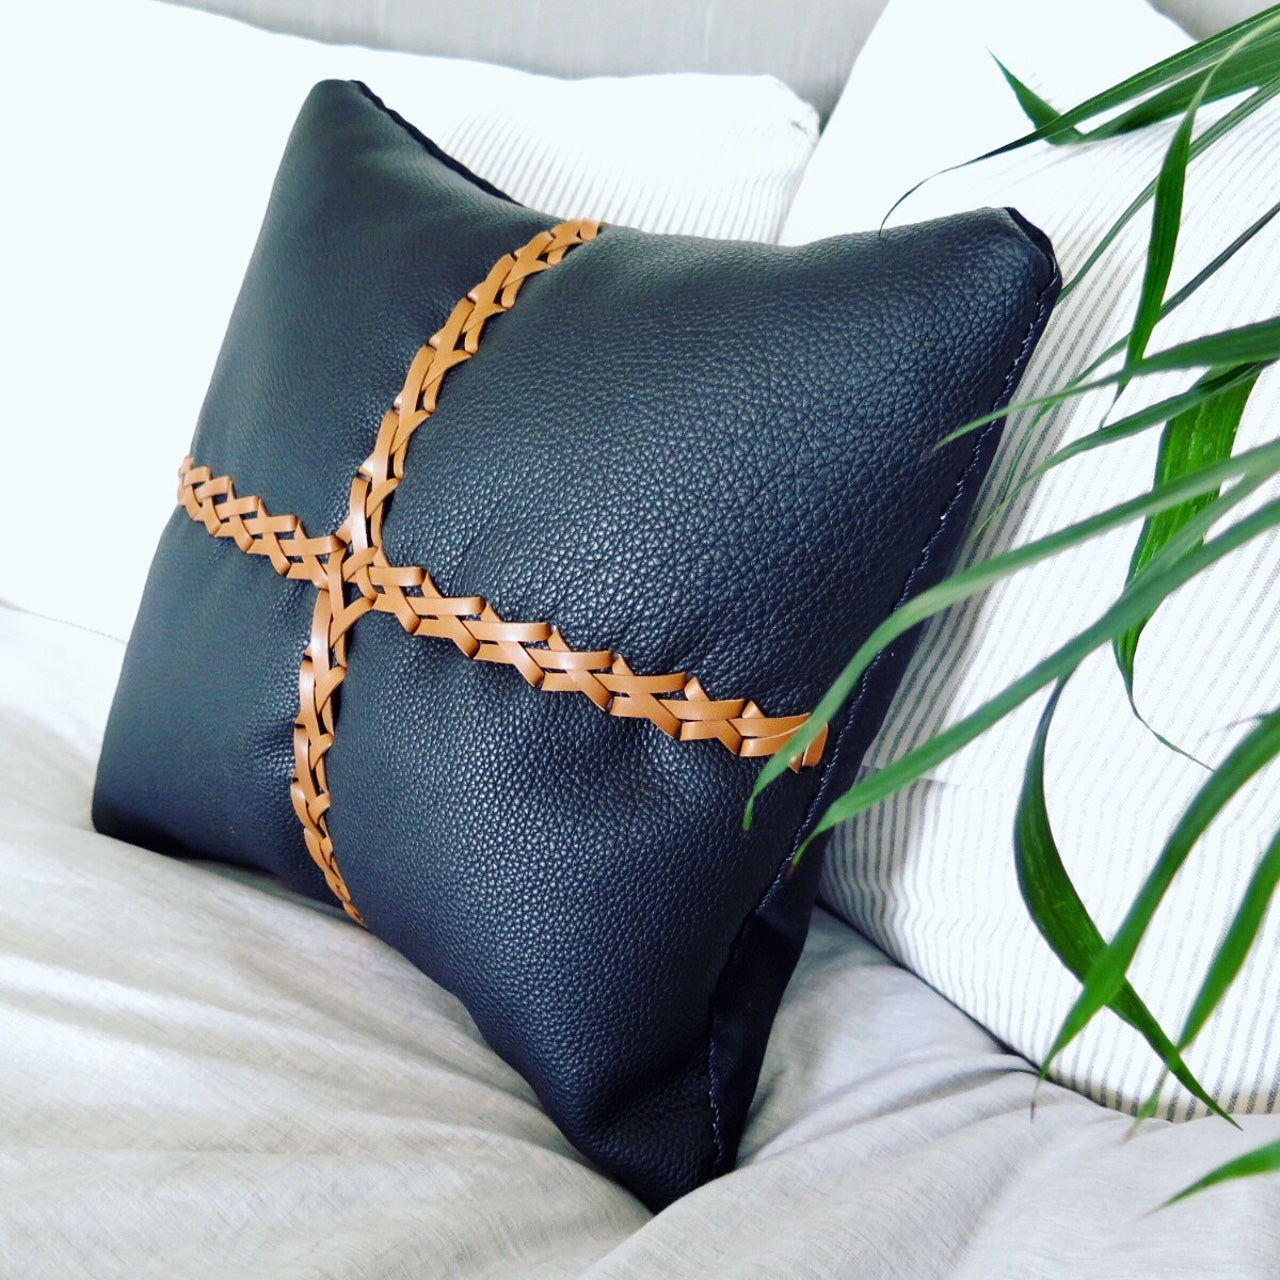 LEATHER JOEY PILLOW IN BLACK COWHIDE